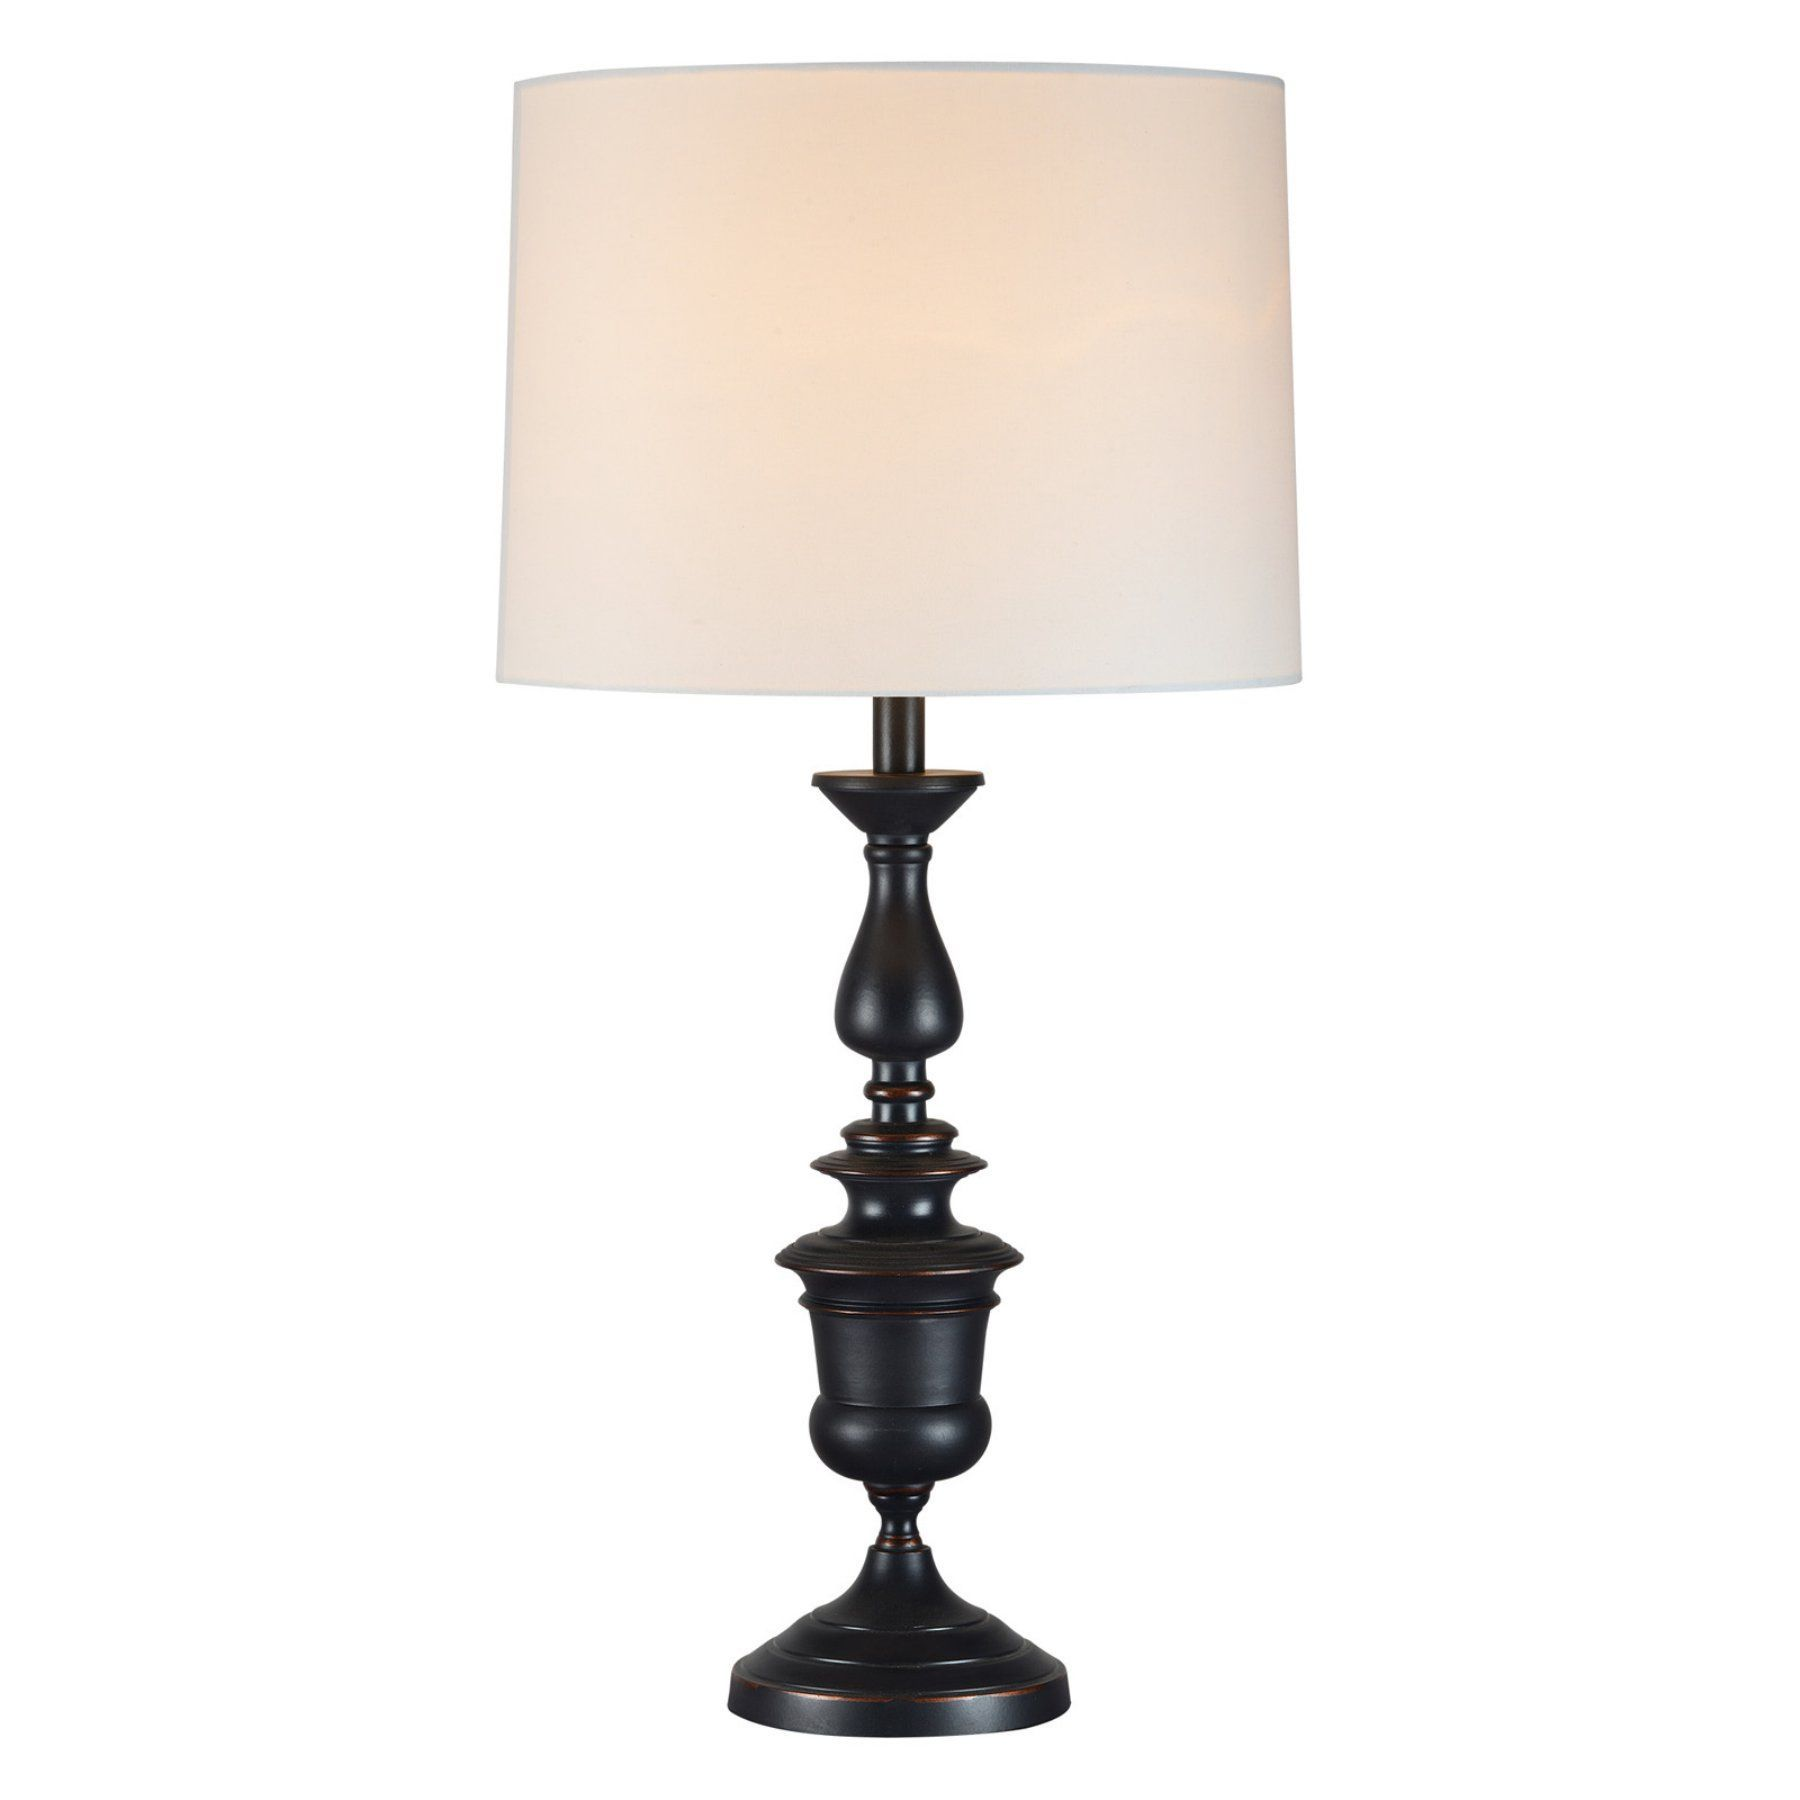 Ren wil ventura table lamp lpt798